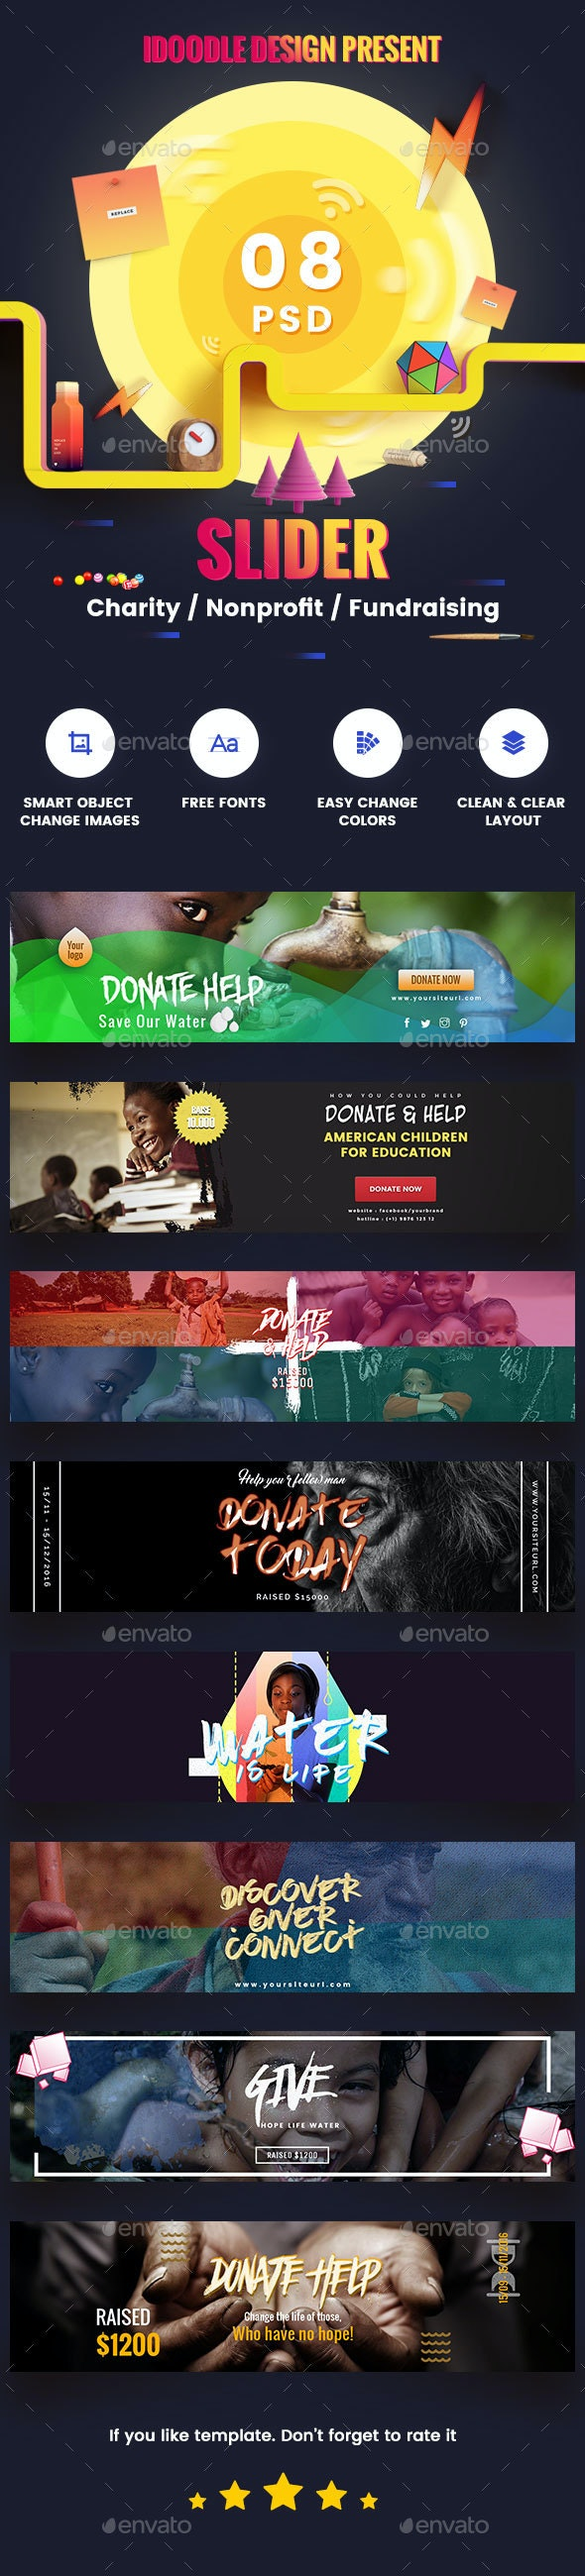 Charity / Nonprofit / Fundraising Sliders - 08 PSD